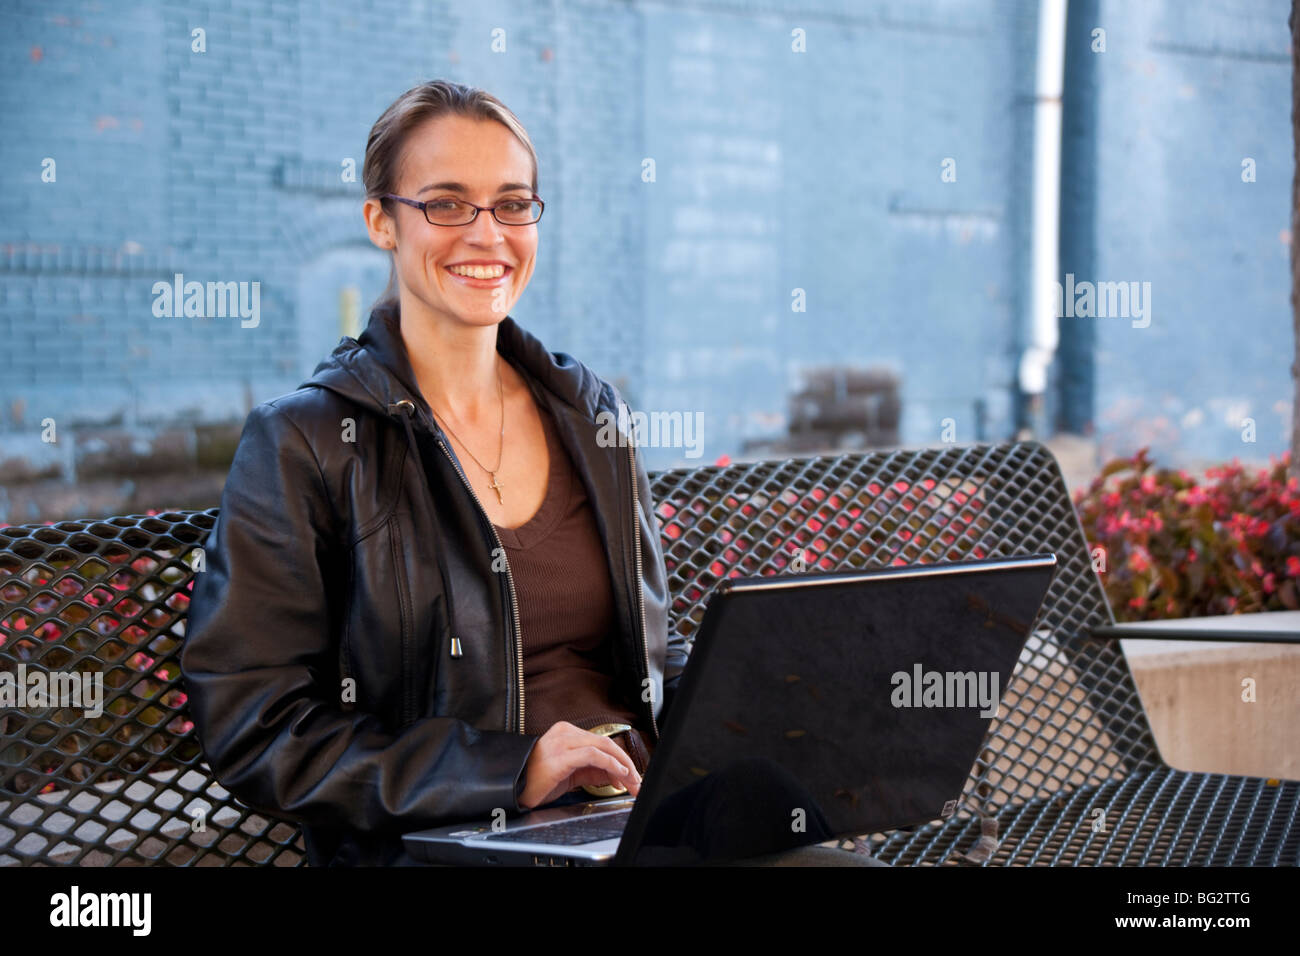 Smiling woman sitting on a parkbench with a notebook computer. Stock Photo